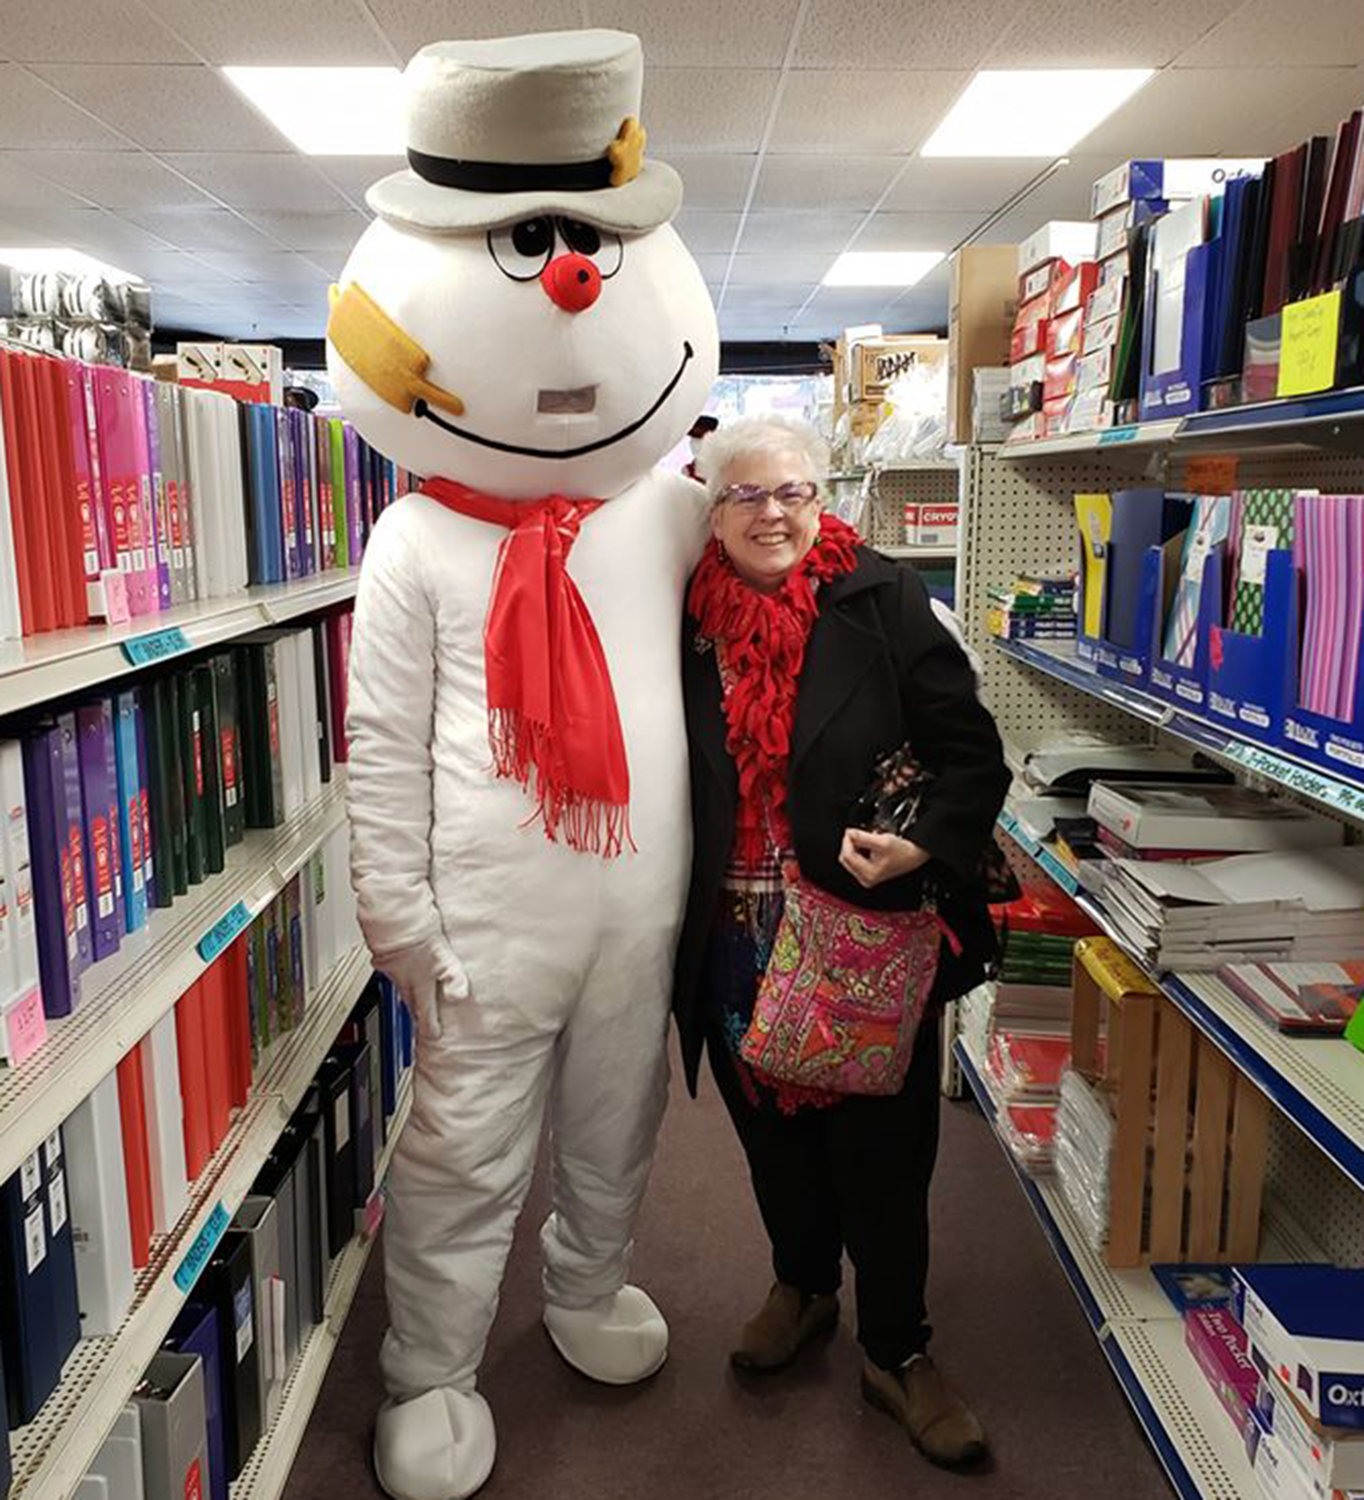 HAPPY, JOLLY SOUL — City of Oneida Mayor-Elect Helen Acker poses with Frosty the Snowman at Oneida Office Supply for the Oneida Christmas Story Downtown Stroll on Sunday, Dec. 1.